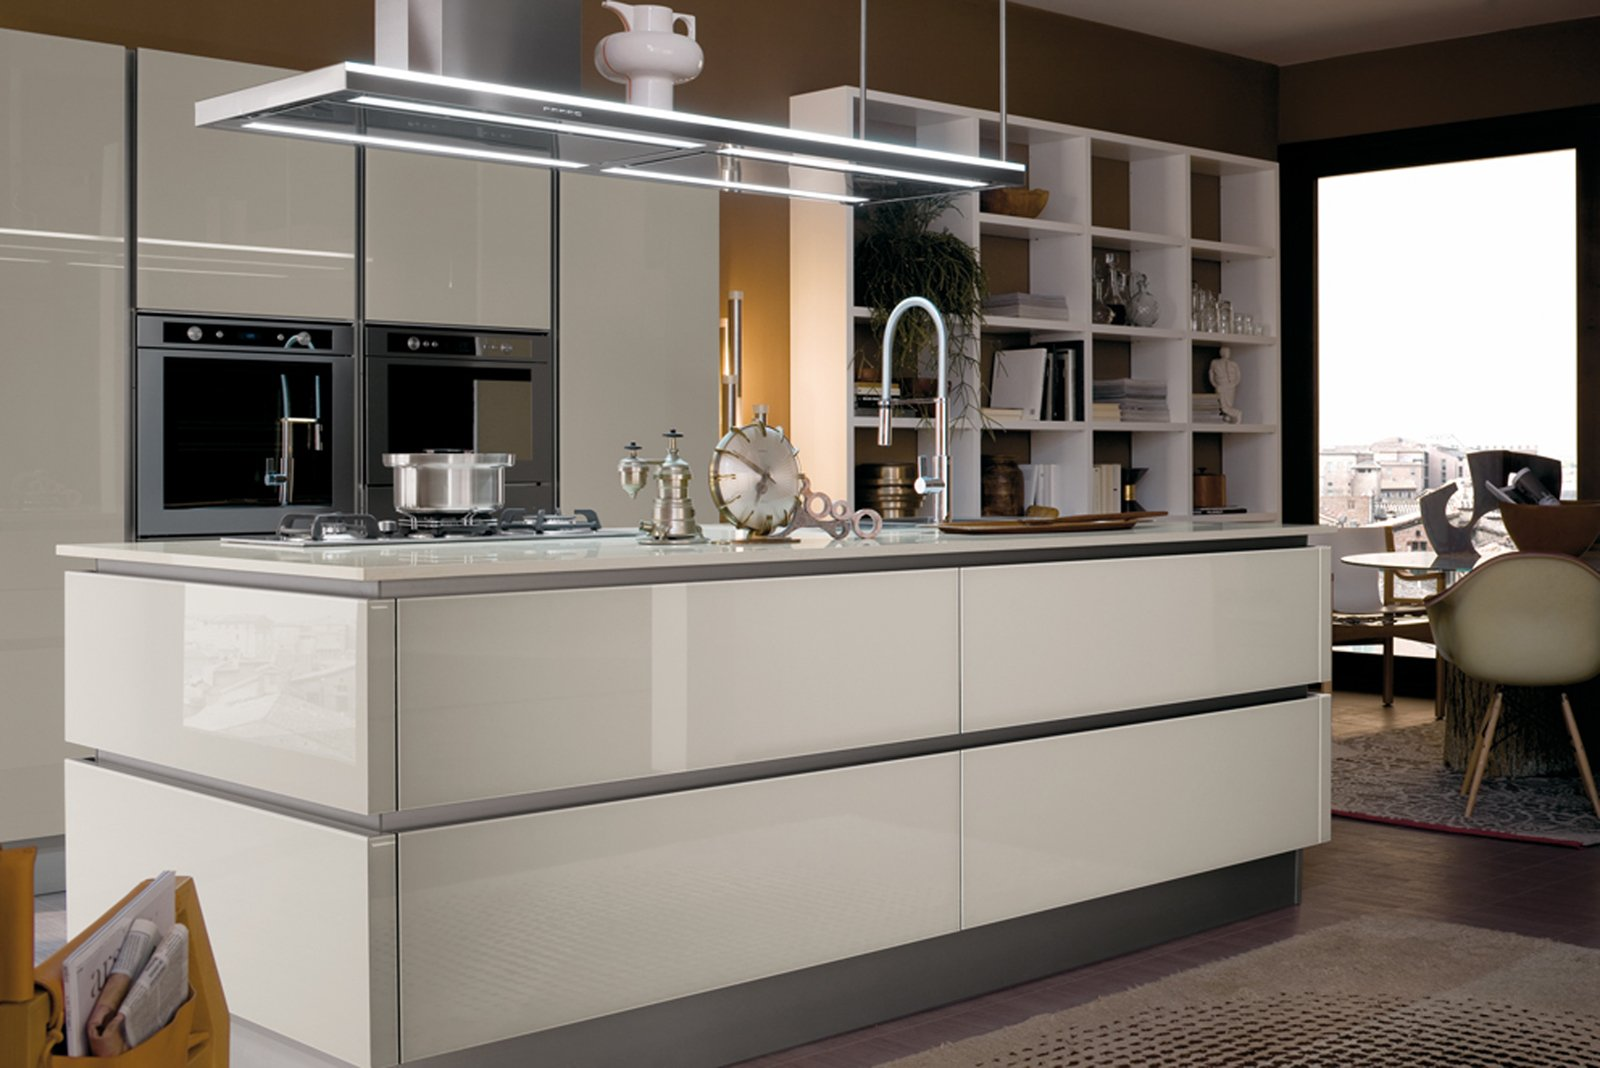 cucine in vetro con superfici a specchio. Black Bedroom Furniture Sets. Home Design Ideas